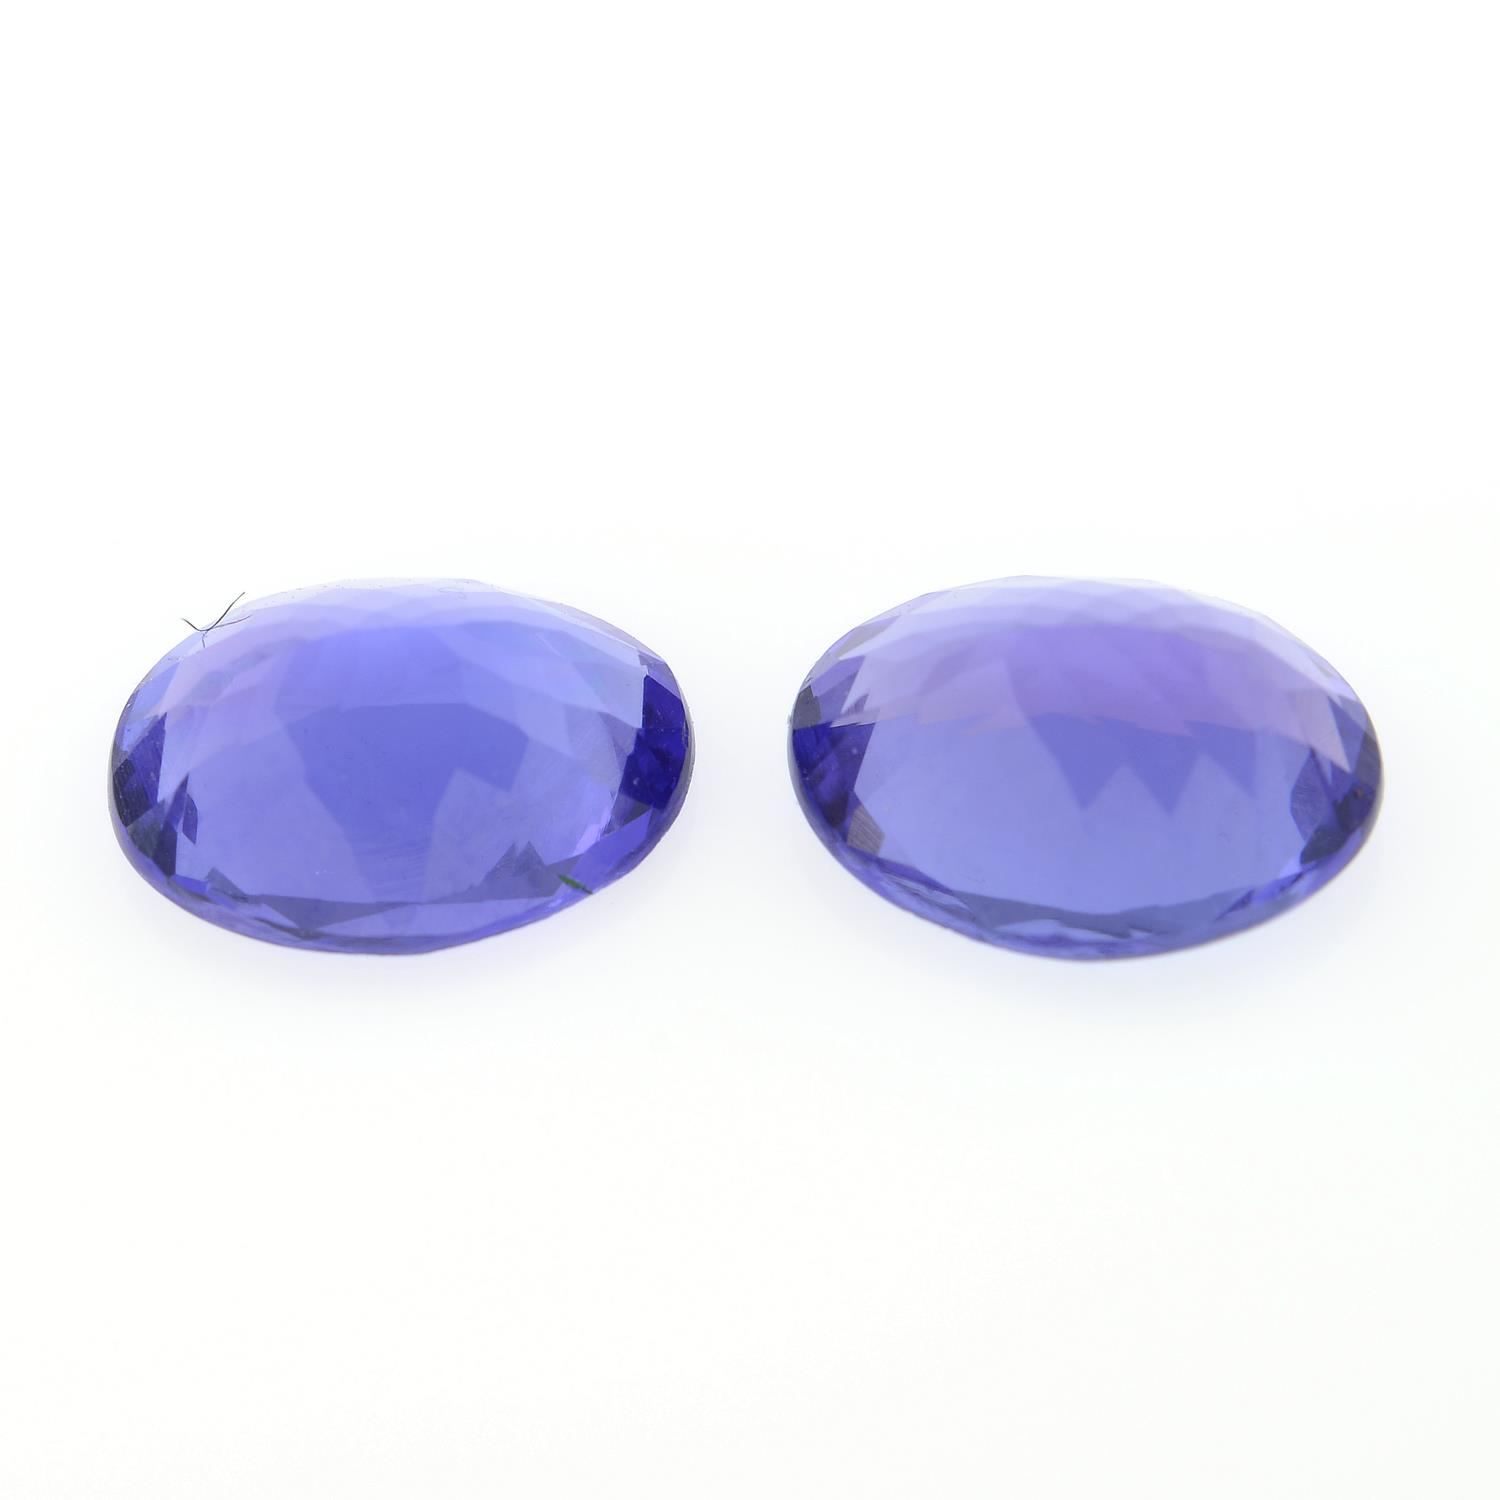 Pair of oval shape tanzanites, weighing 2.44ct. - Image 2 of 2